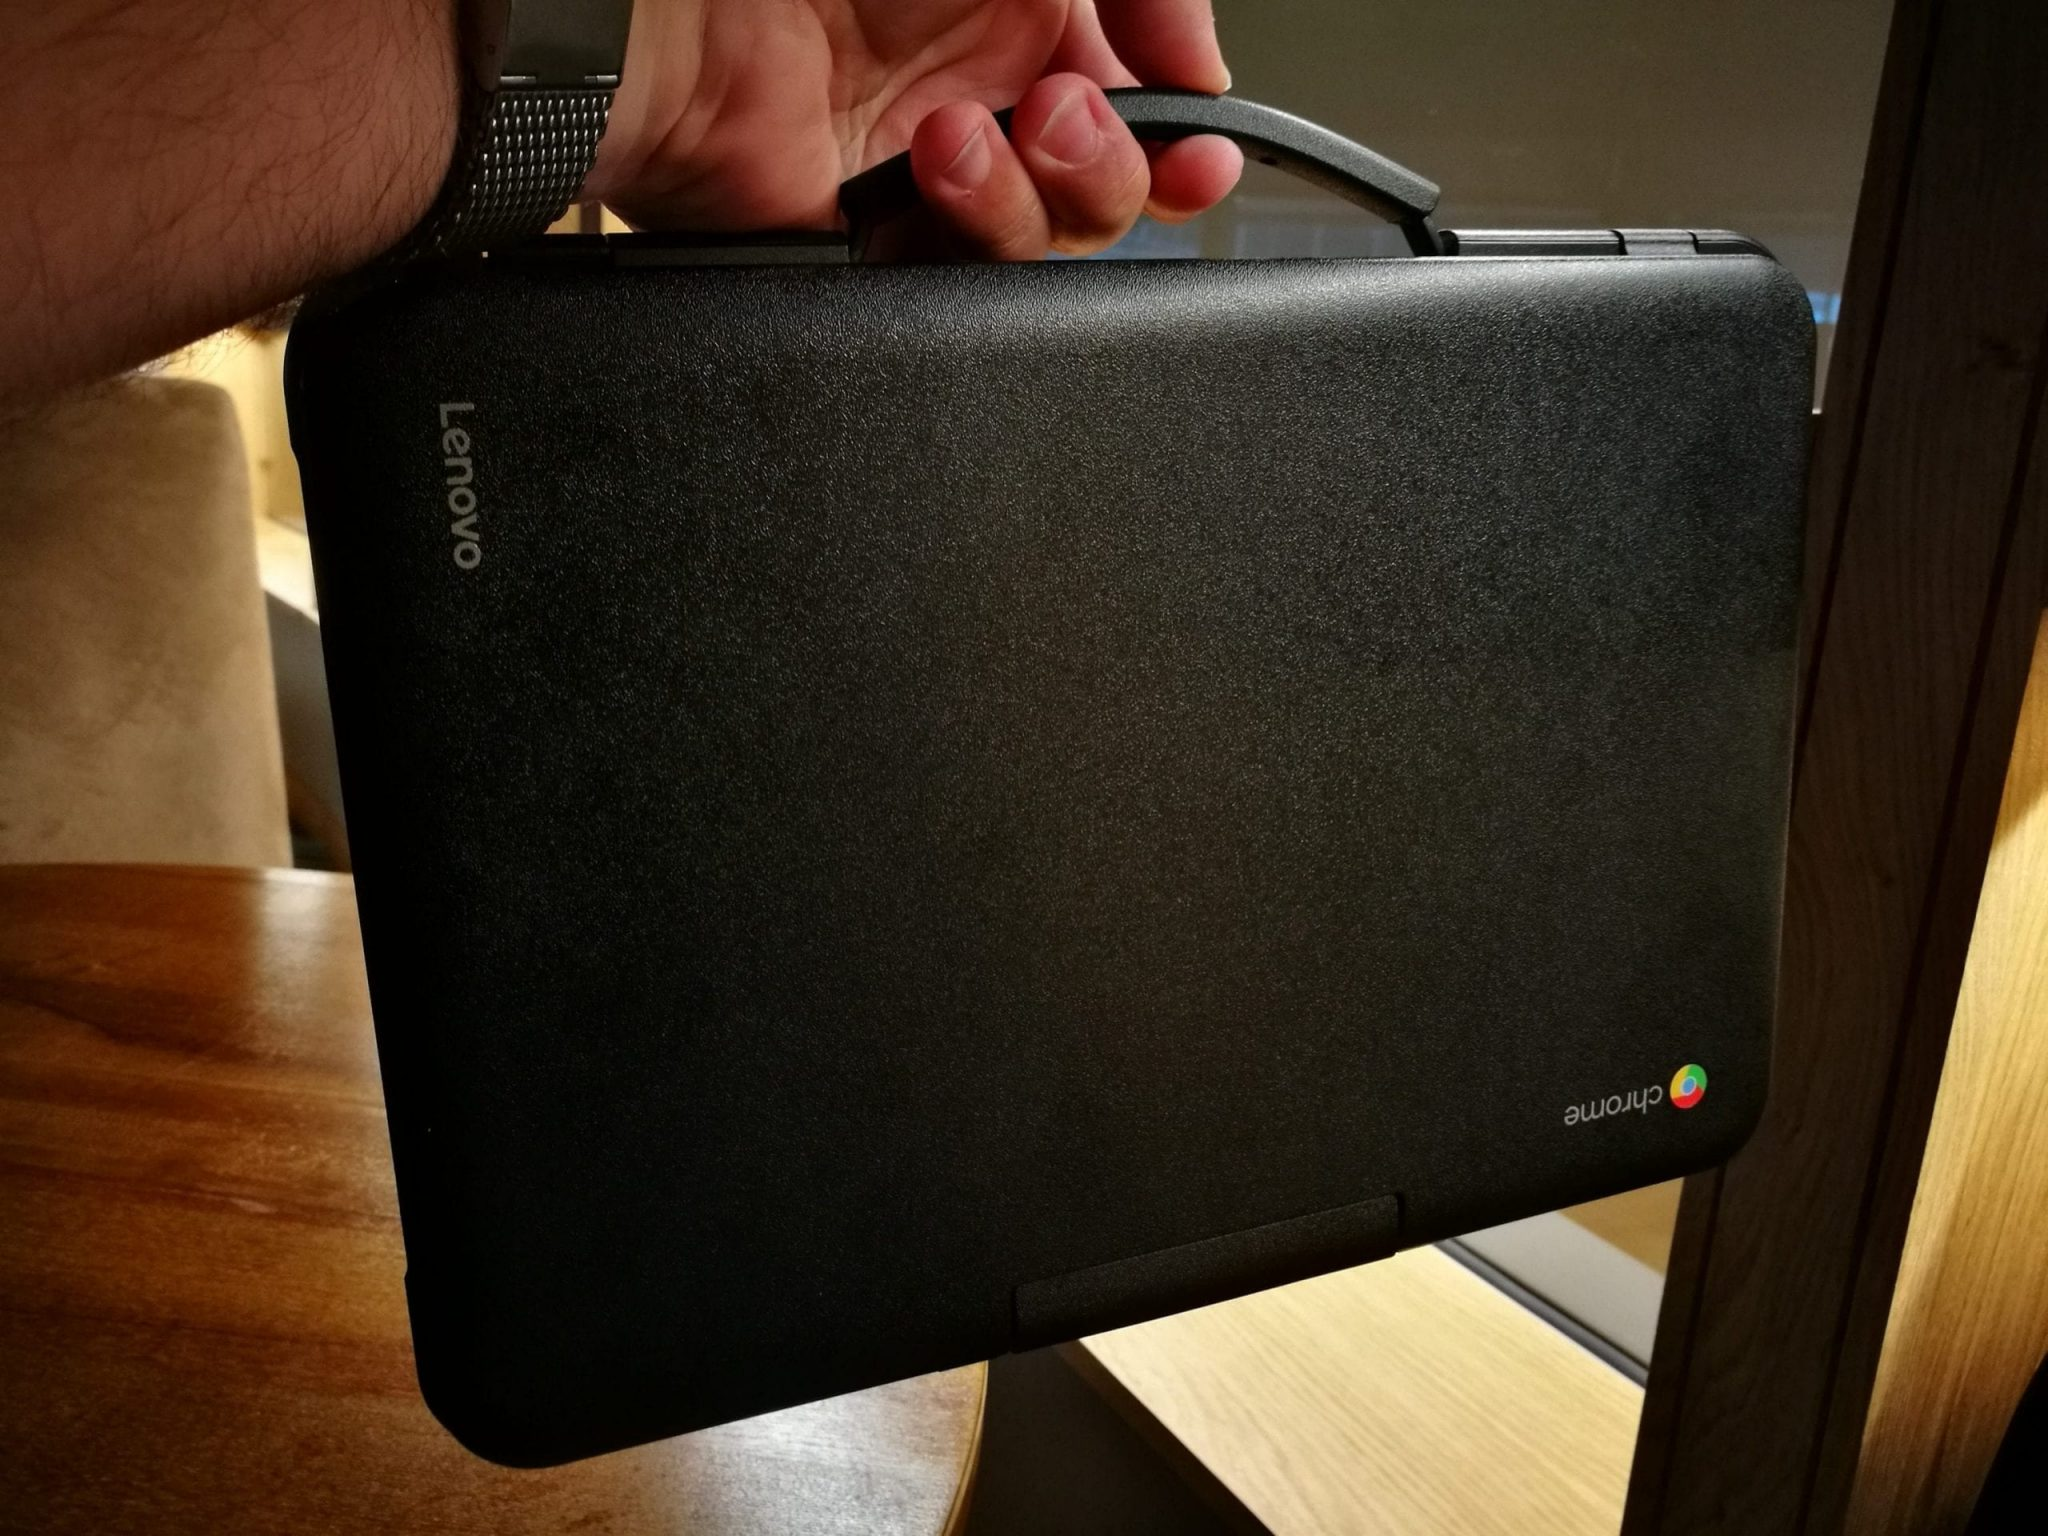 Lenovo N22 Chromebook with carry handle